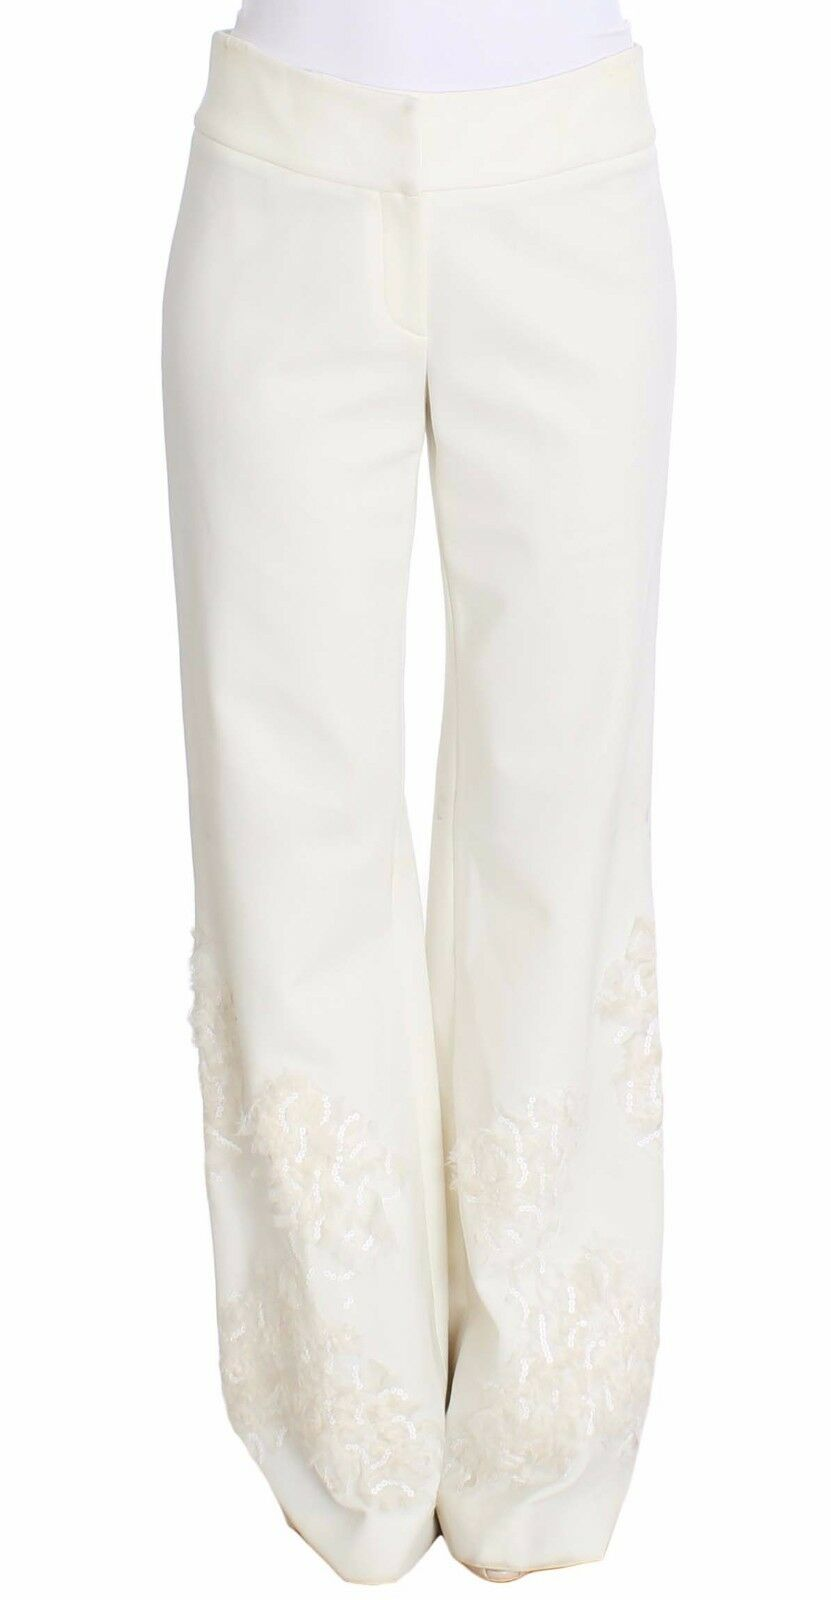 NWT ERMANNO SCERVINO Pants White Stretch Sequined Trousers IT42   US8